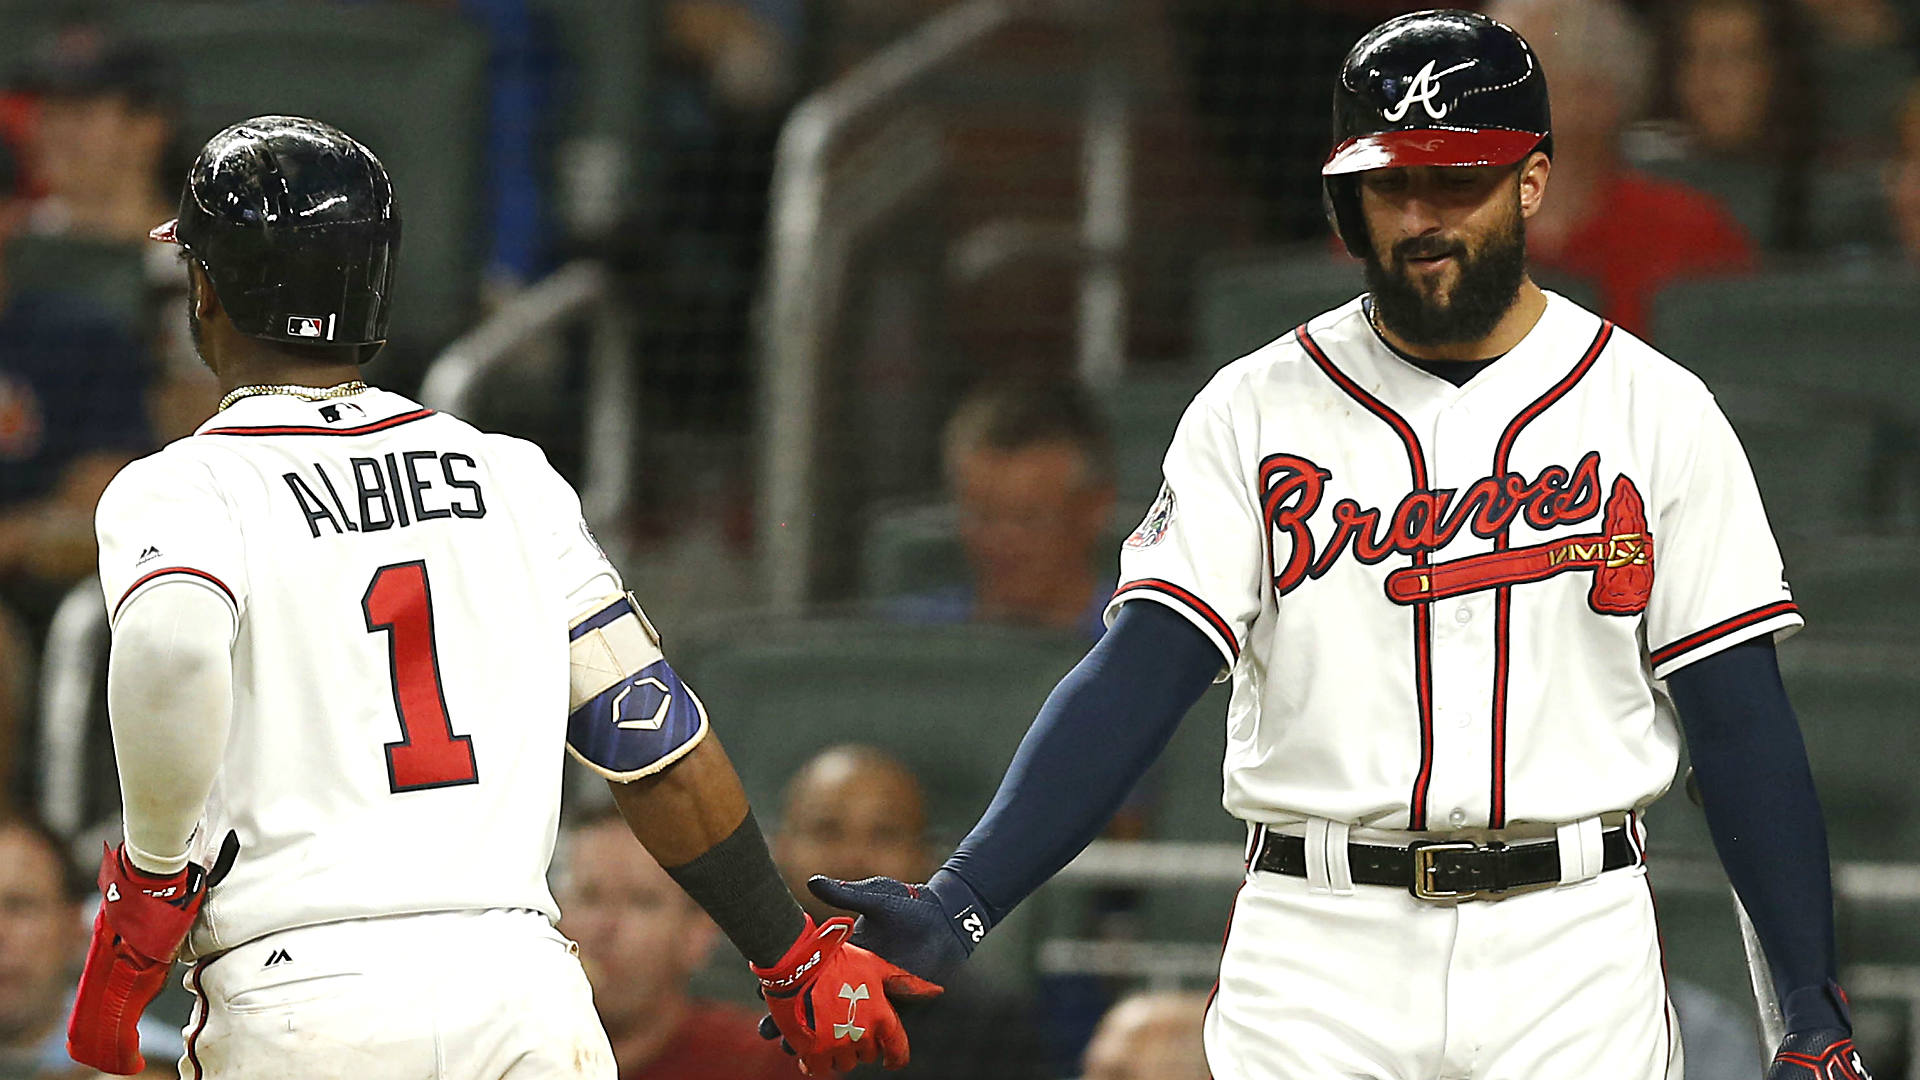 Major League Baseball  drops hammer on Braves' scandal: prospect loss, lifetime ban